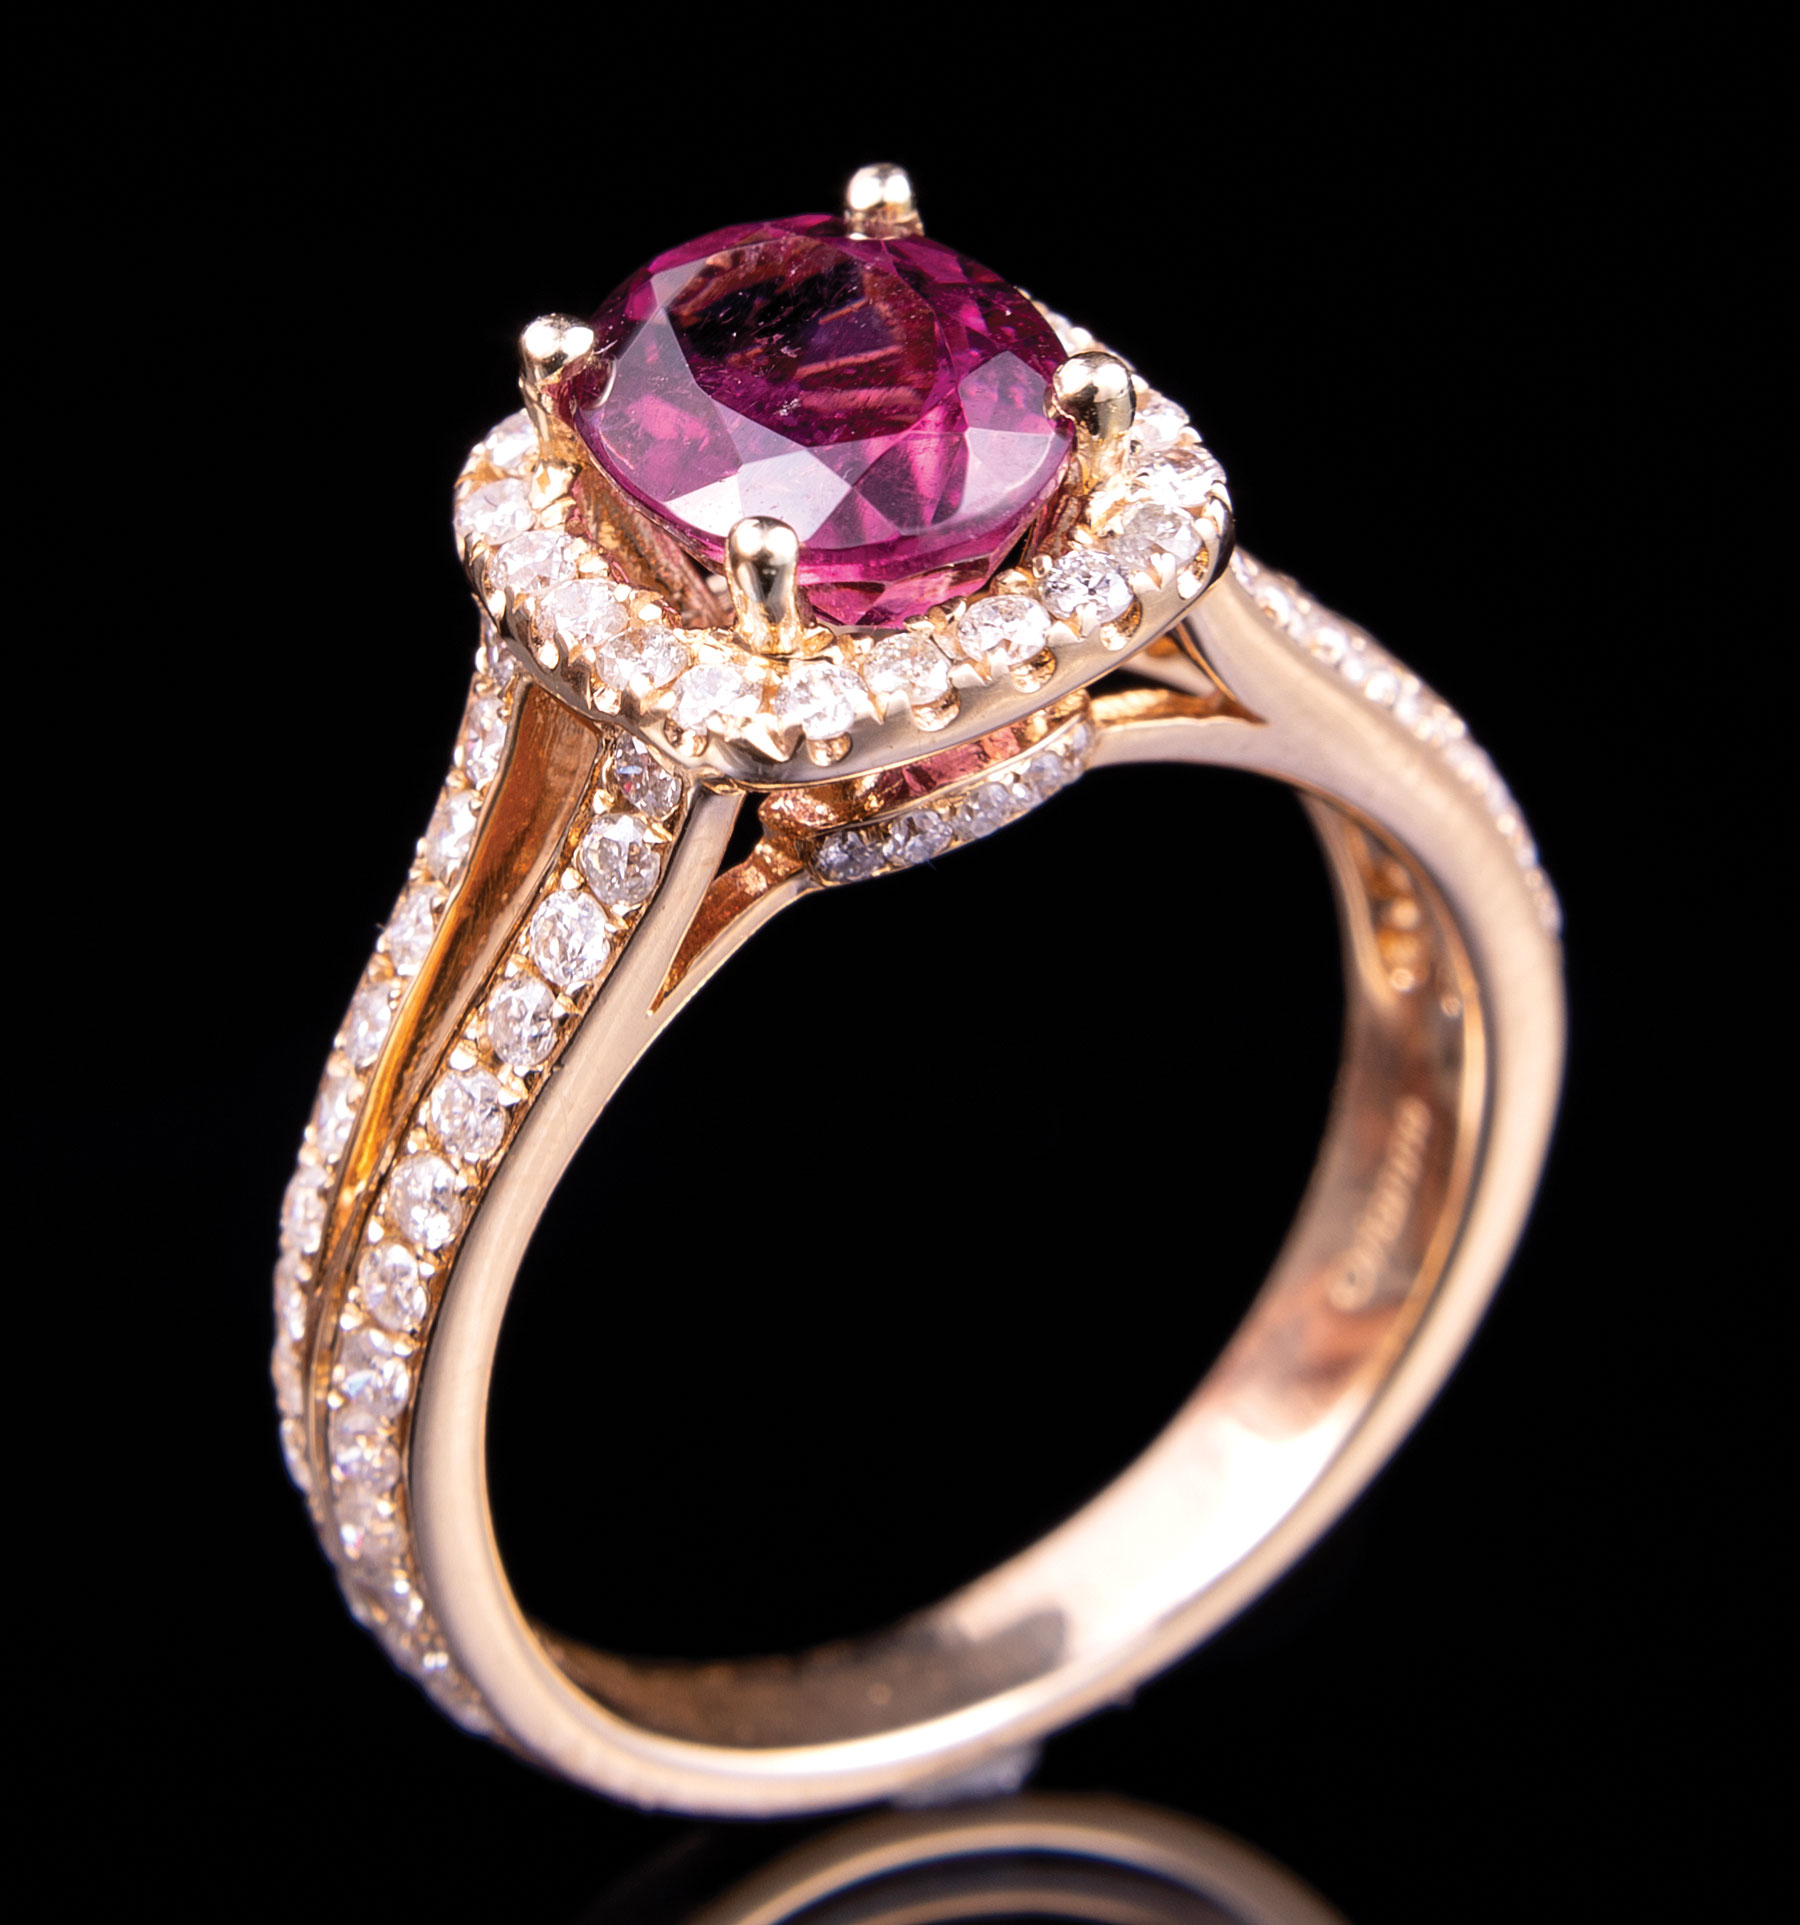 Lot 614 - 14 kt. Yellow Gold, Rubellite and Diamond Ring , prong set oval mixed cut rubellite, 8.50 x 6.80 x